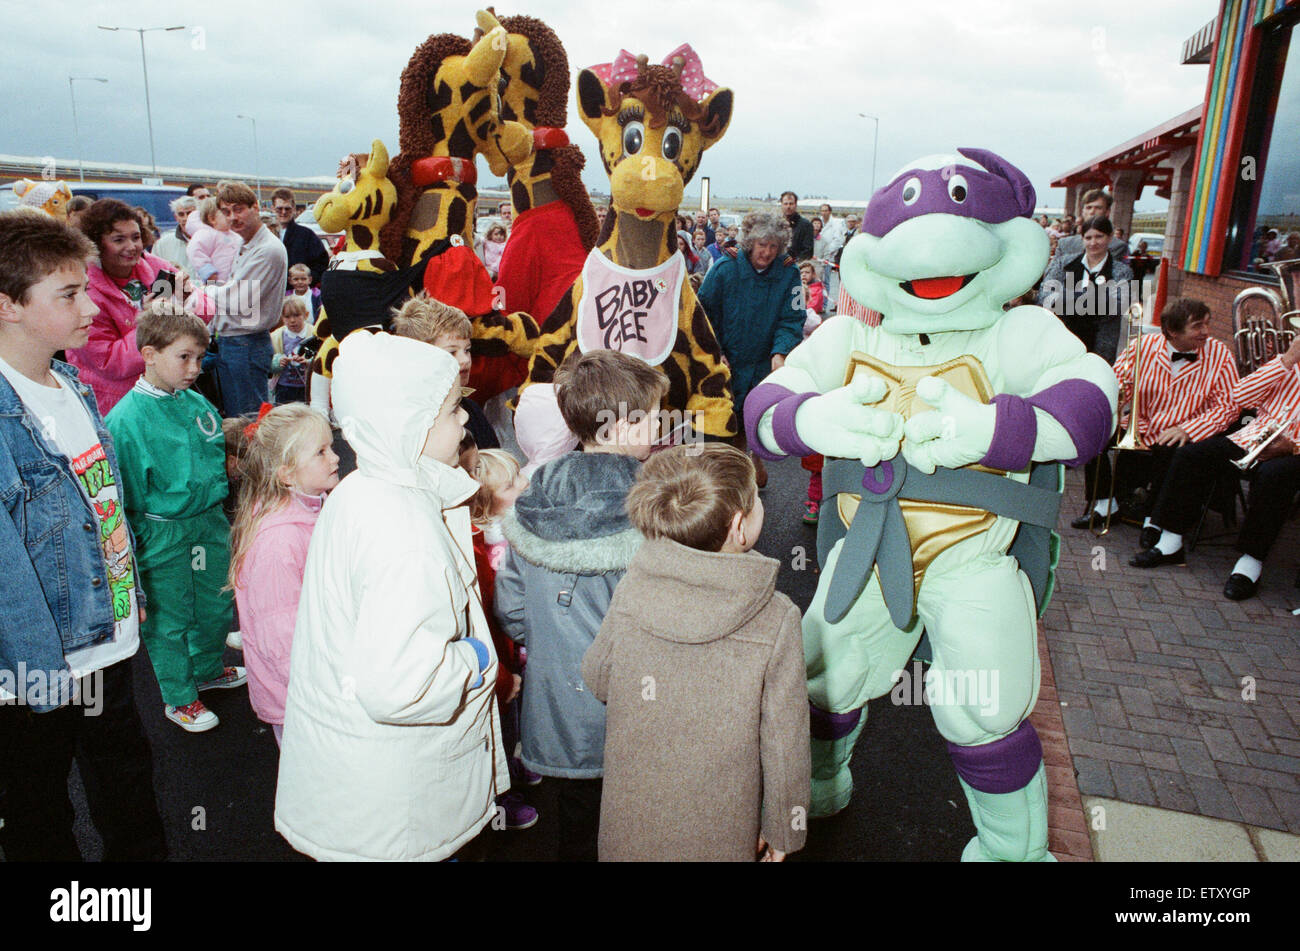 Turtle Mania hit Teesside today, at the opening of the new Toys R Us at Teesside Shopping Park, Sandown Way, Stockton - Stock Image